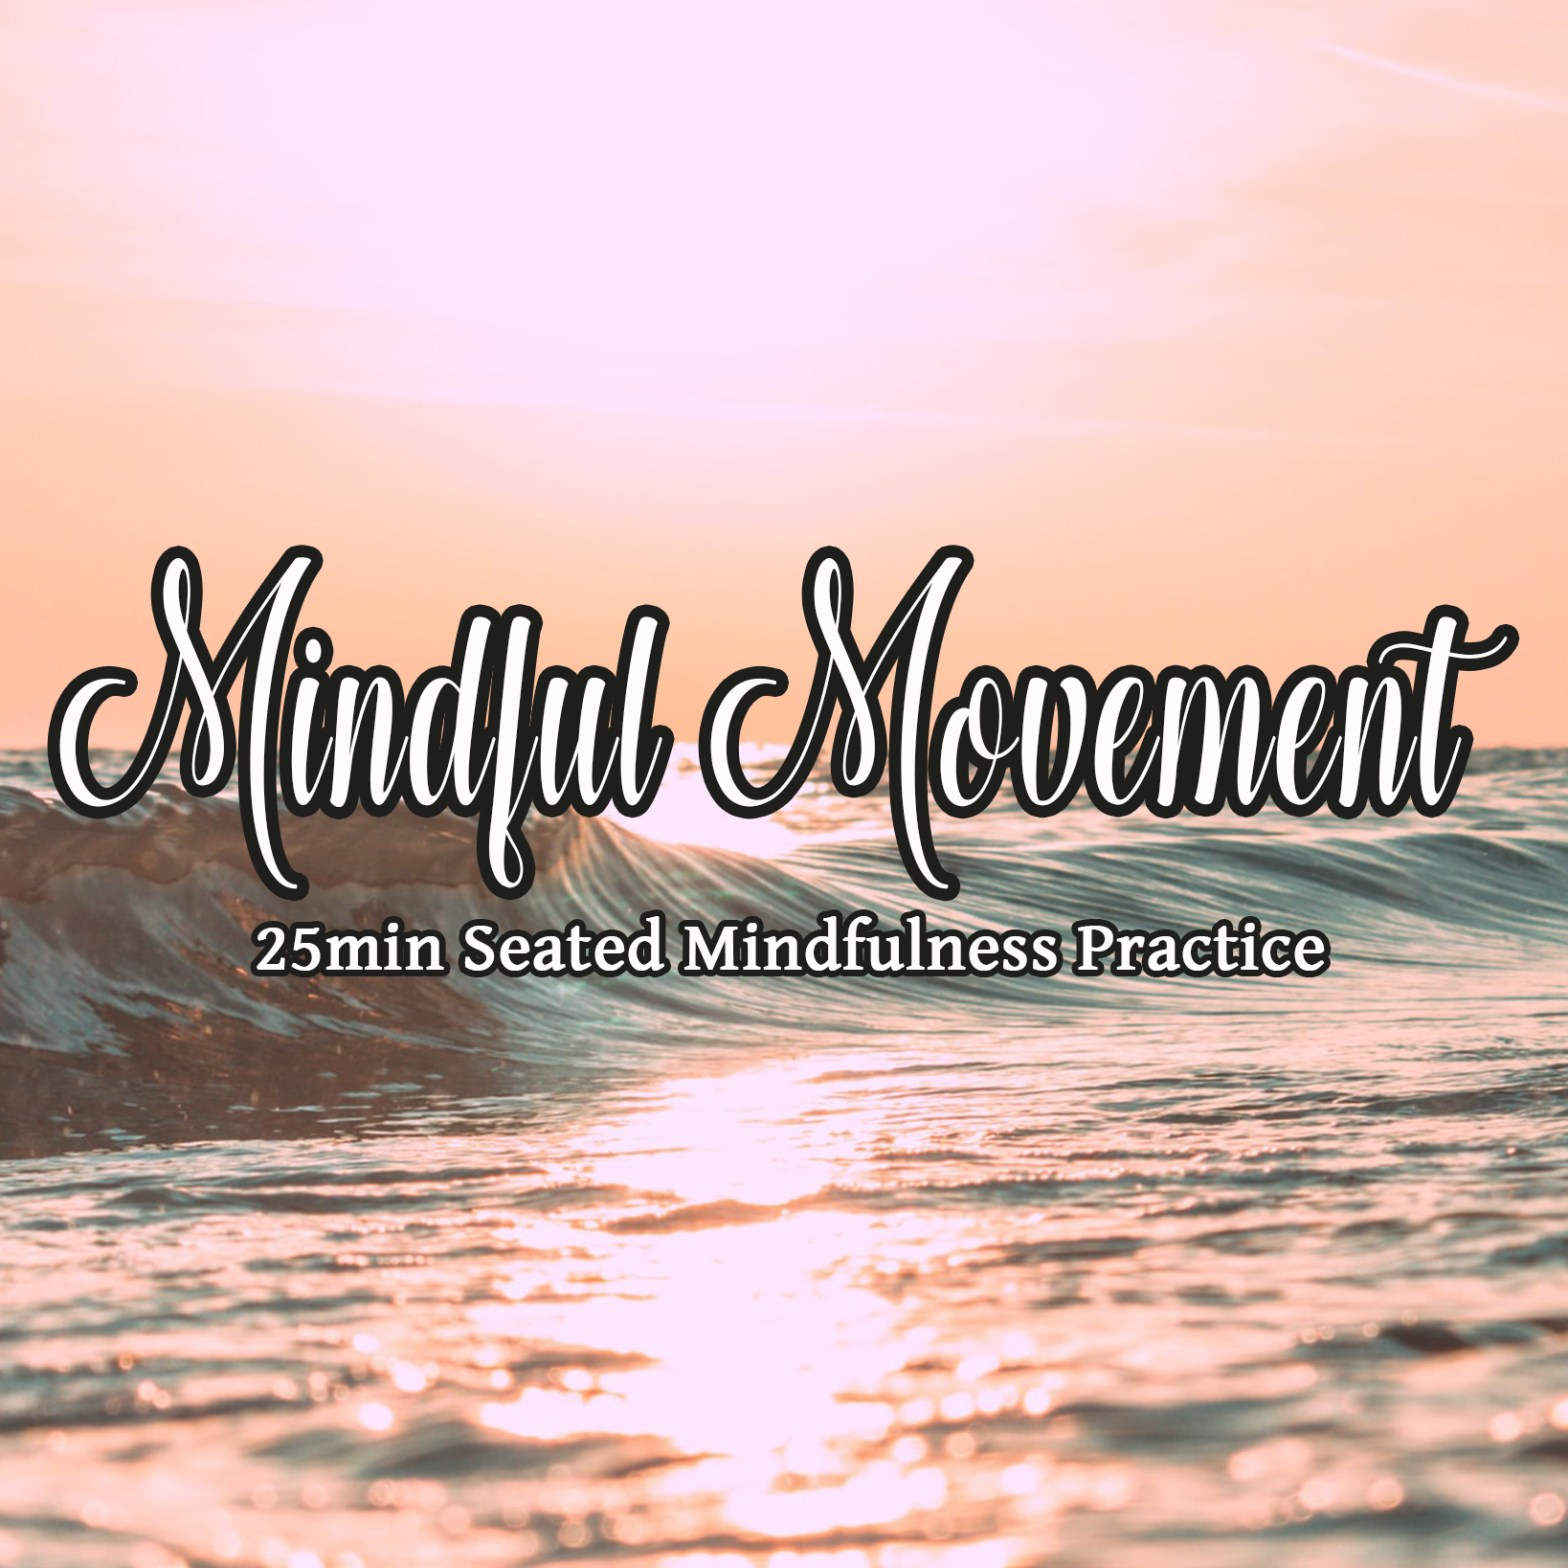 """a wave in the sunset - orange light - the text reads: Mindful Movement - 25min seated mindfulness practice"""""""